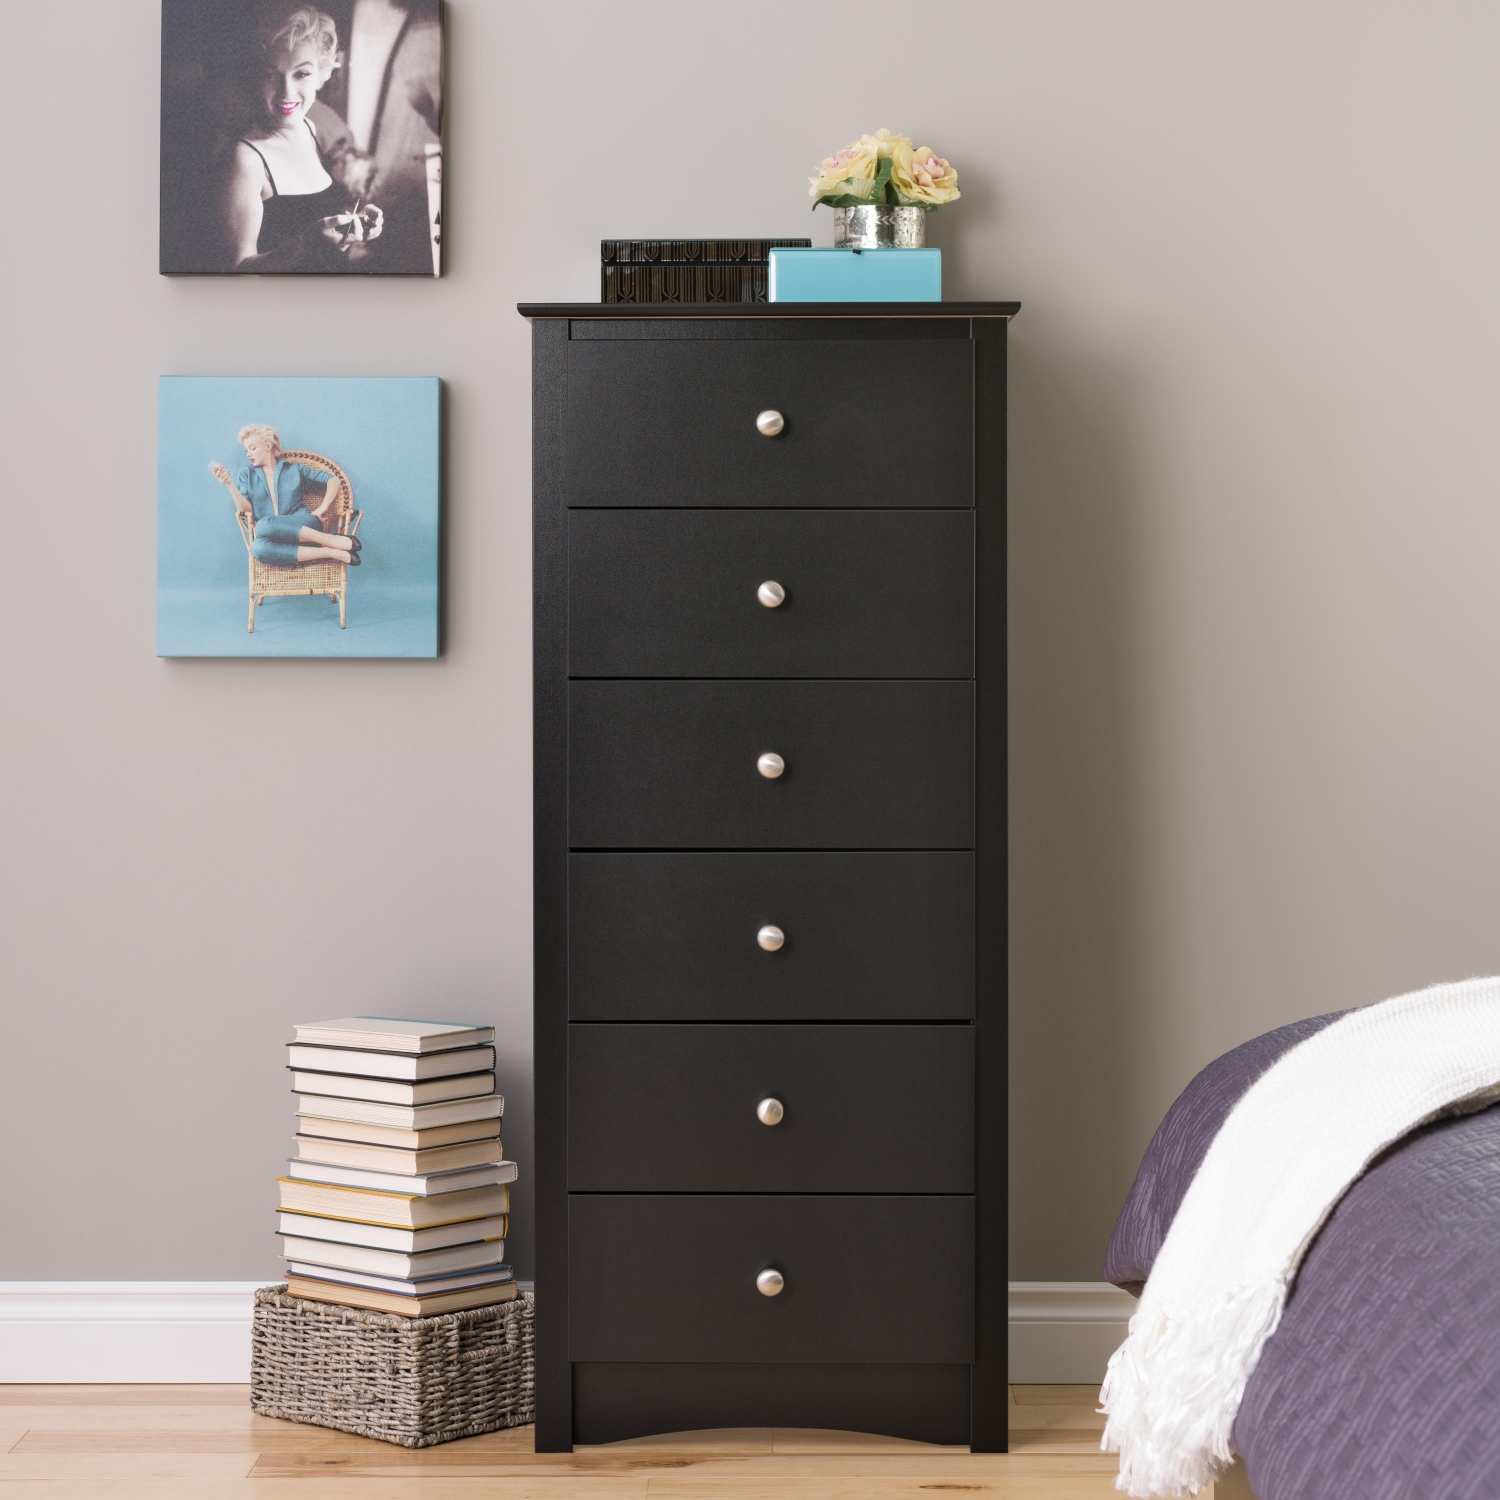 Details about Black Tall Chest 6-Drawer Dresser Set Home Bedroom Wooden  Space-Saving Furniture